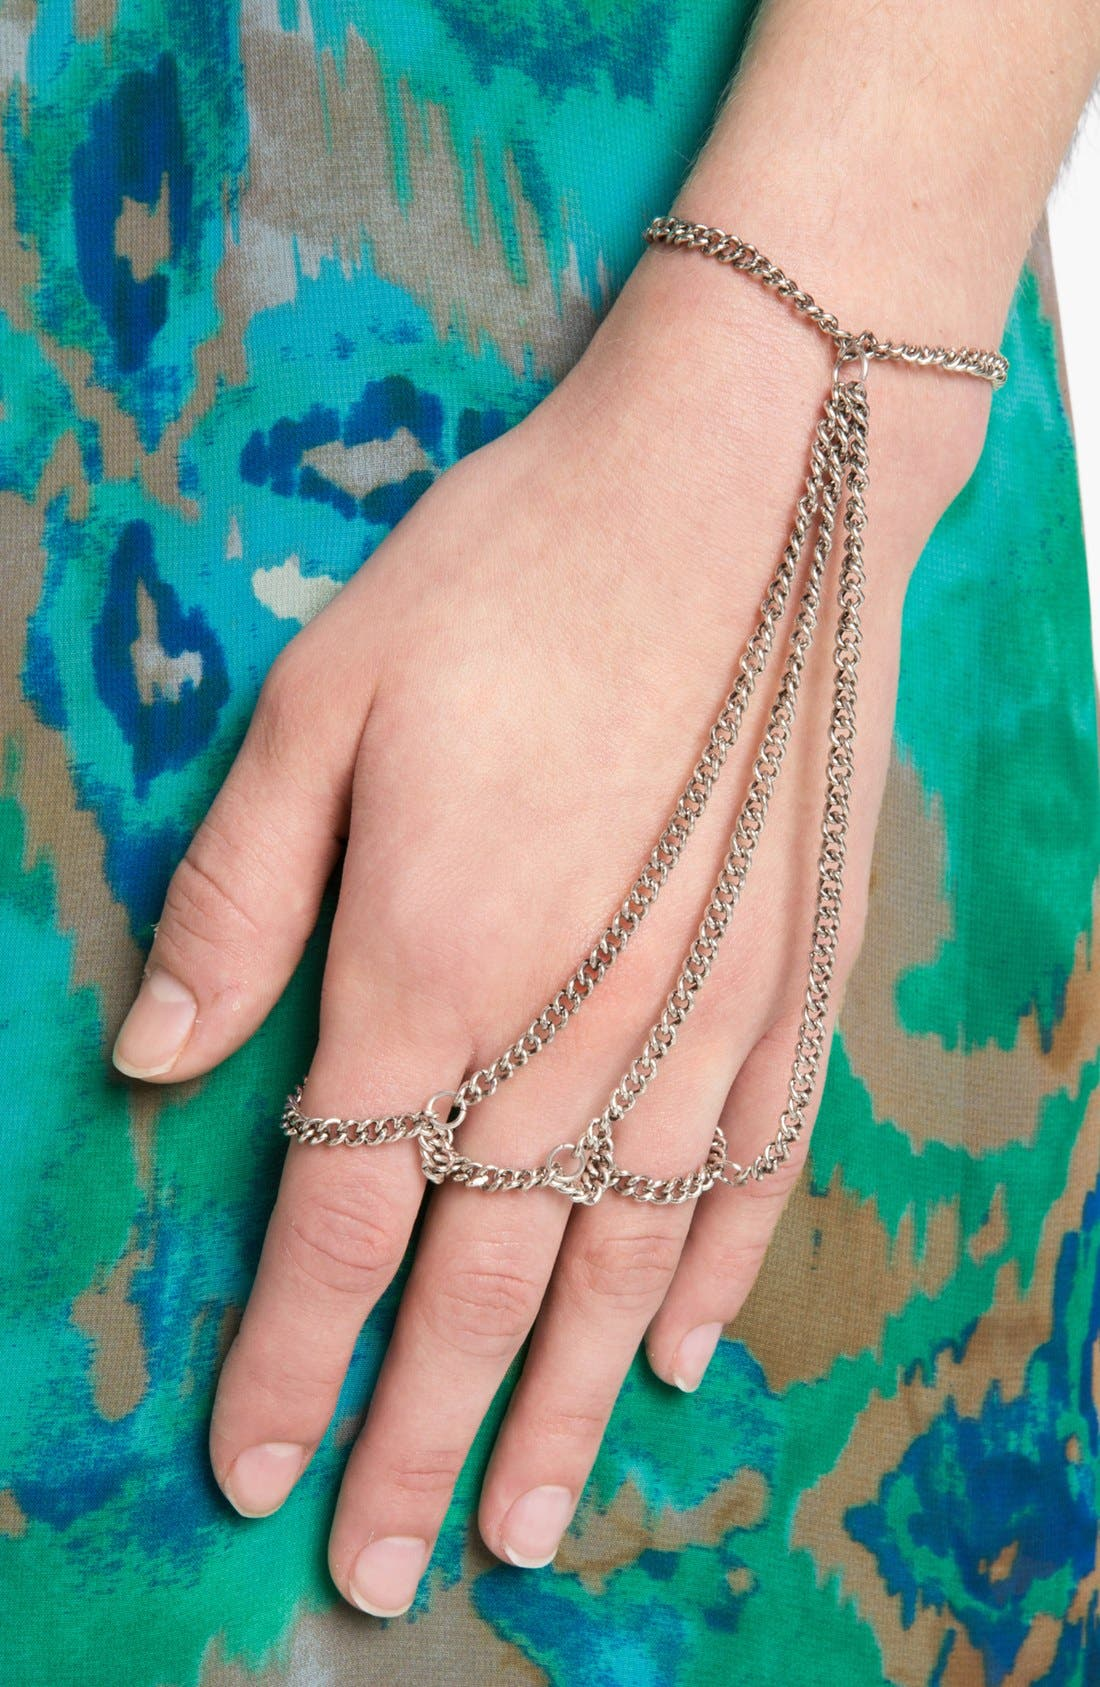 Alternate Image 1 Selected - Orion Three Finger Hand Chain